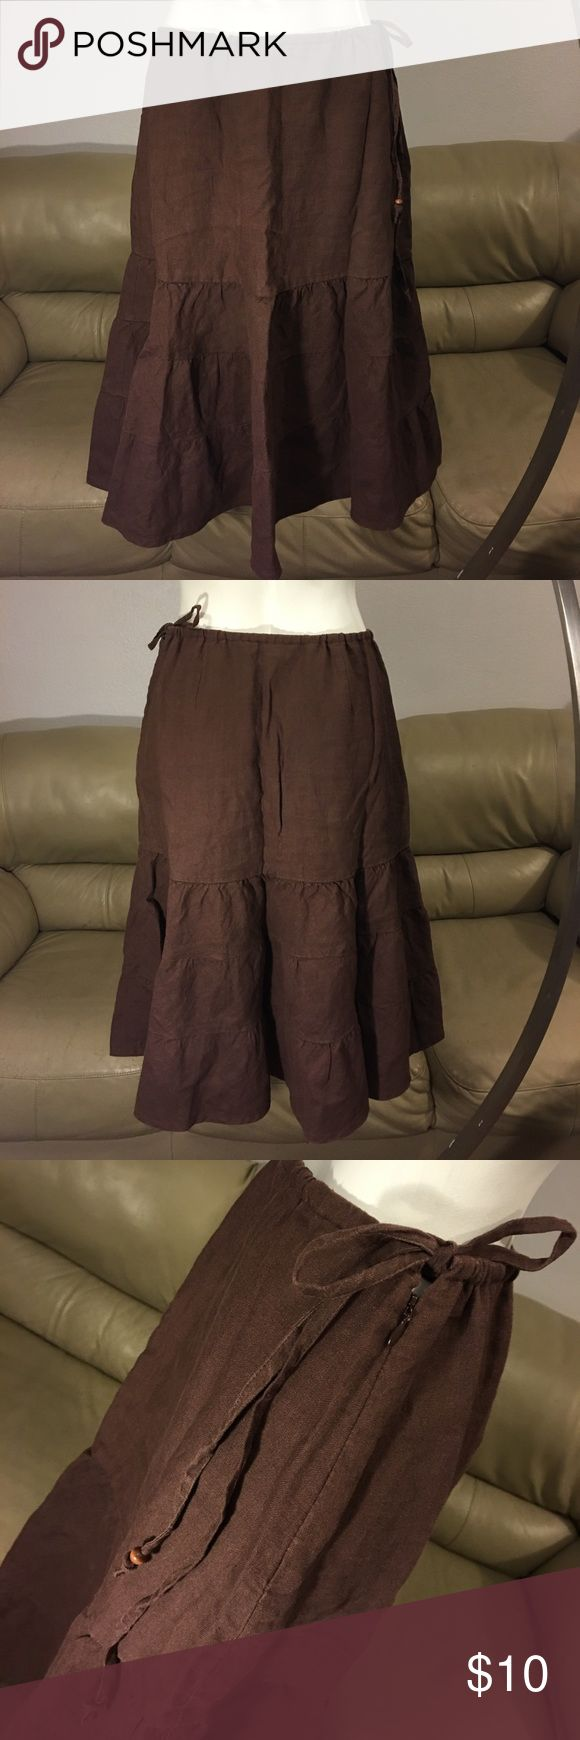 """Gap Brown Linen Skirt size 8 This is super cute! Euc! Waist measures approximately 33"""" but with draw string can be tightened! Length 27 1/2"""" GAP Skirts Midi"""